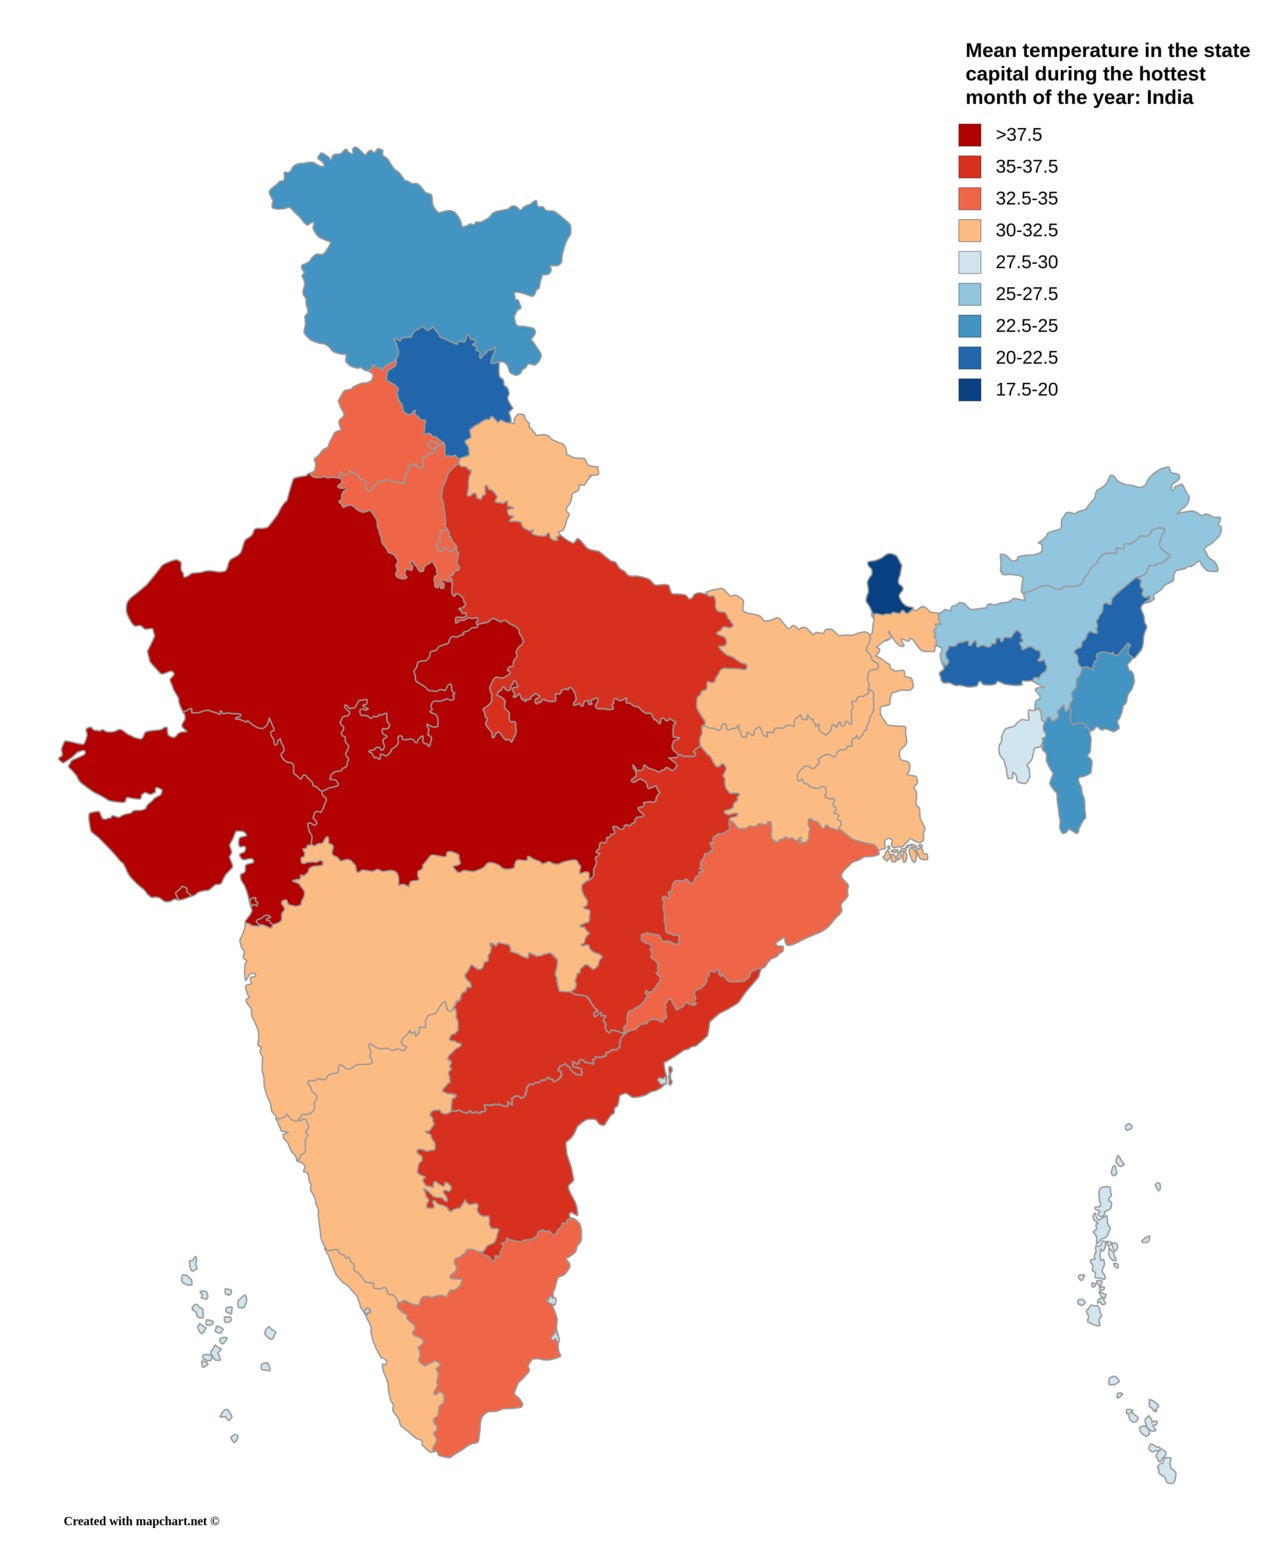 Freshplaza average temperatures in indian state capitals a map showing the mean temperature in indian state capitals during the hottest month of the year freerunsca Images